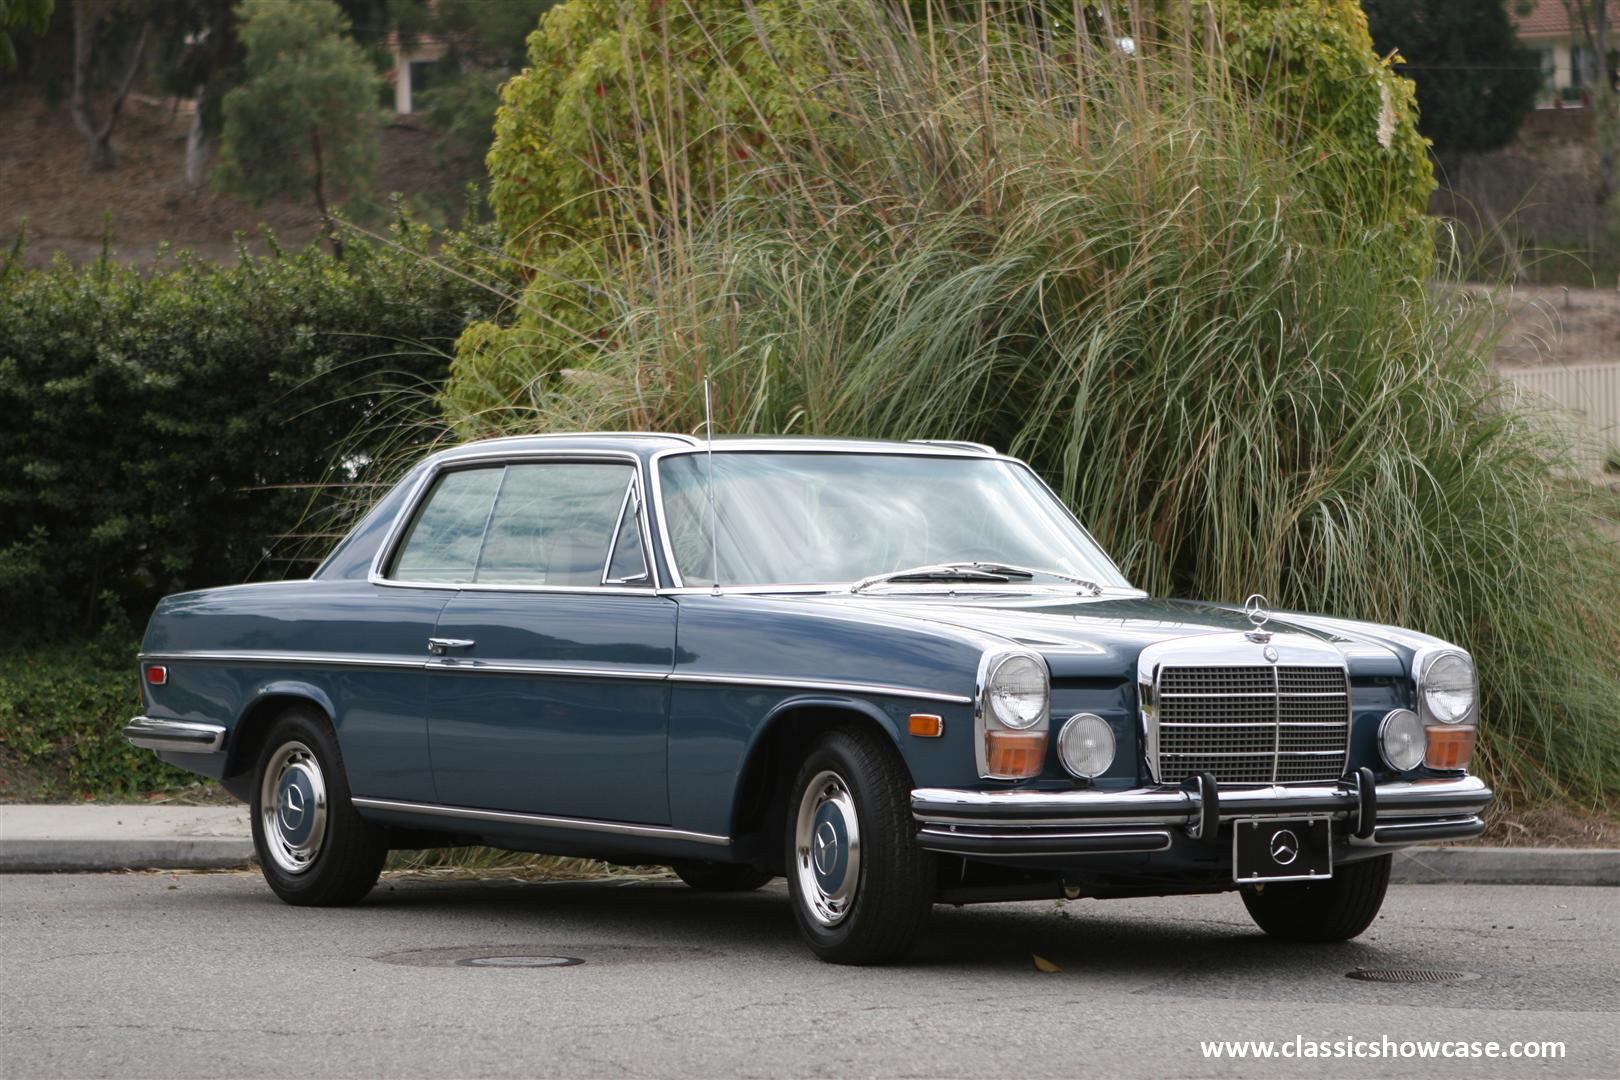 1972 mercedes benz 250c coupe by classic showcase for Mercedes benz classics for sale